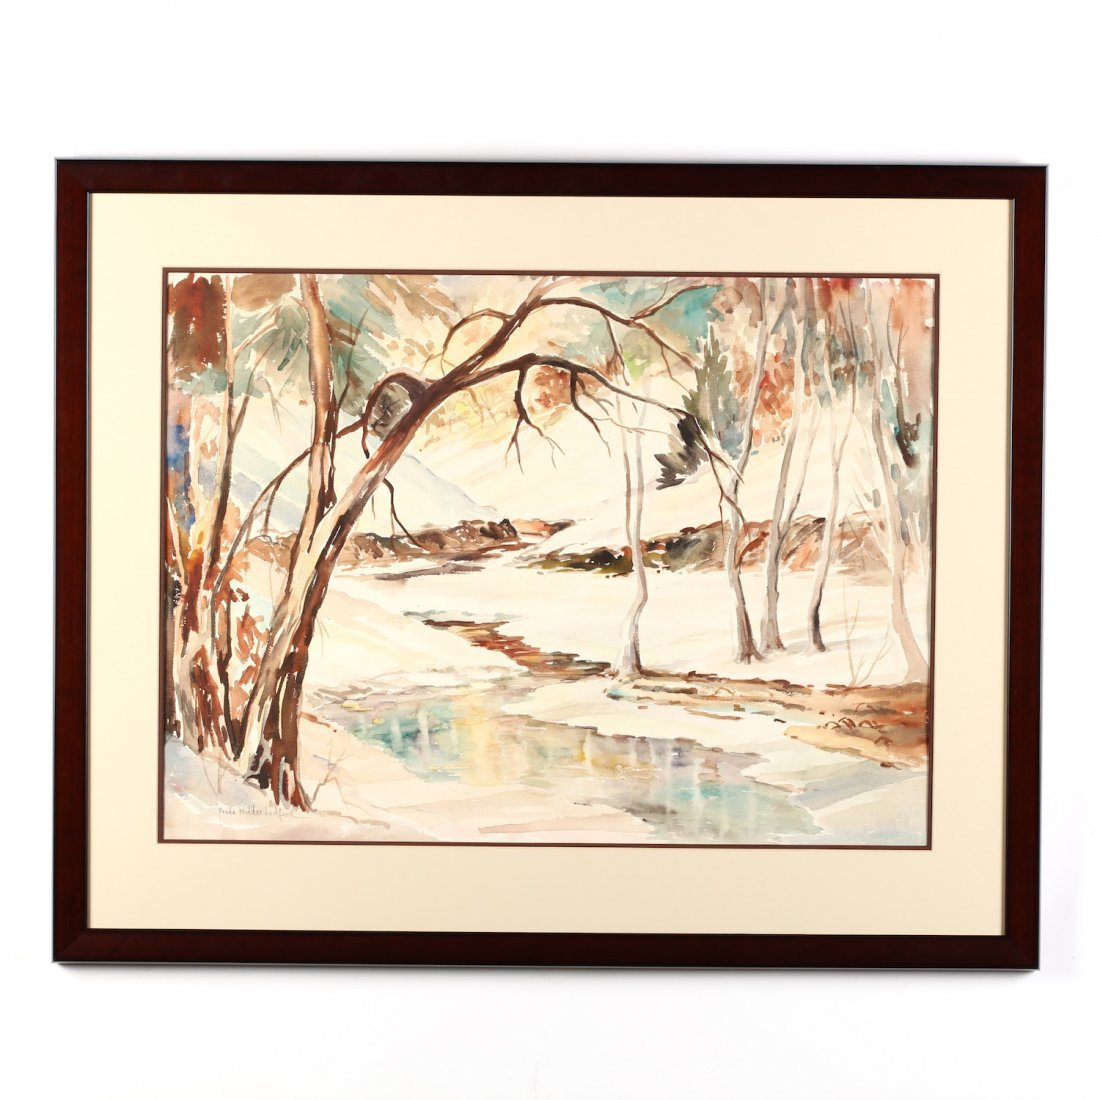 Freda Widder Ledford, Winter Stream